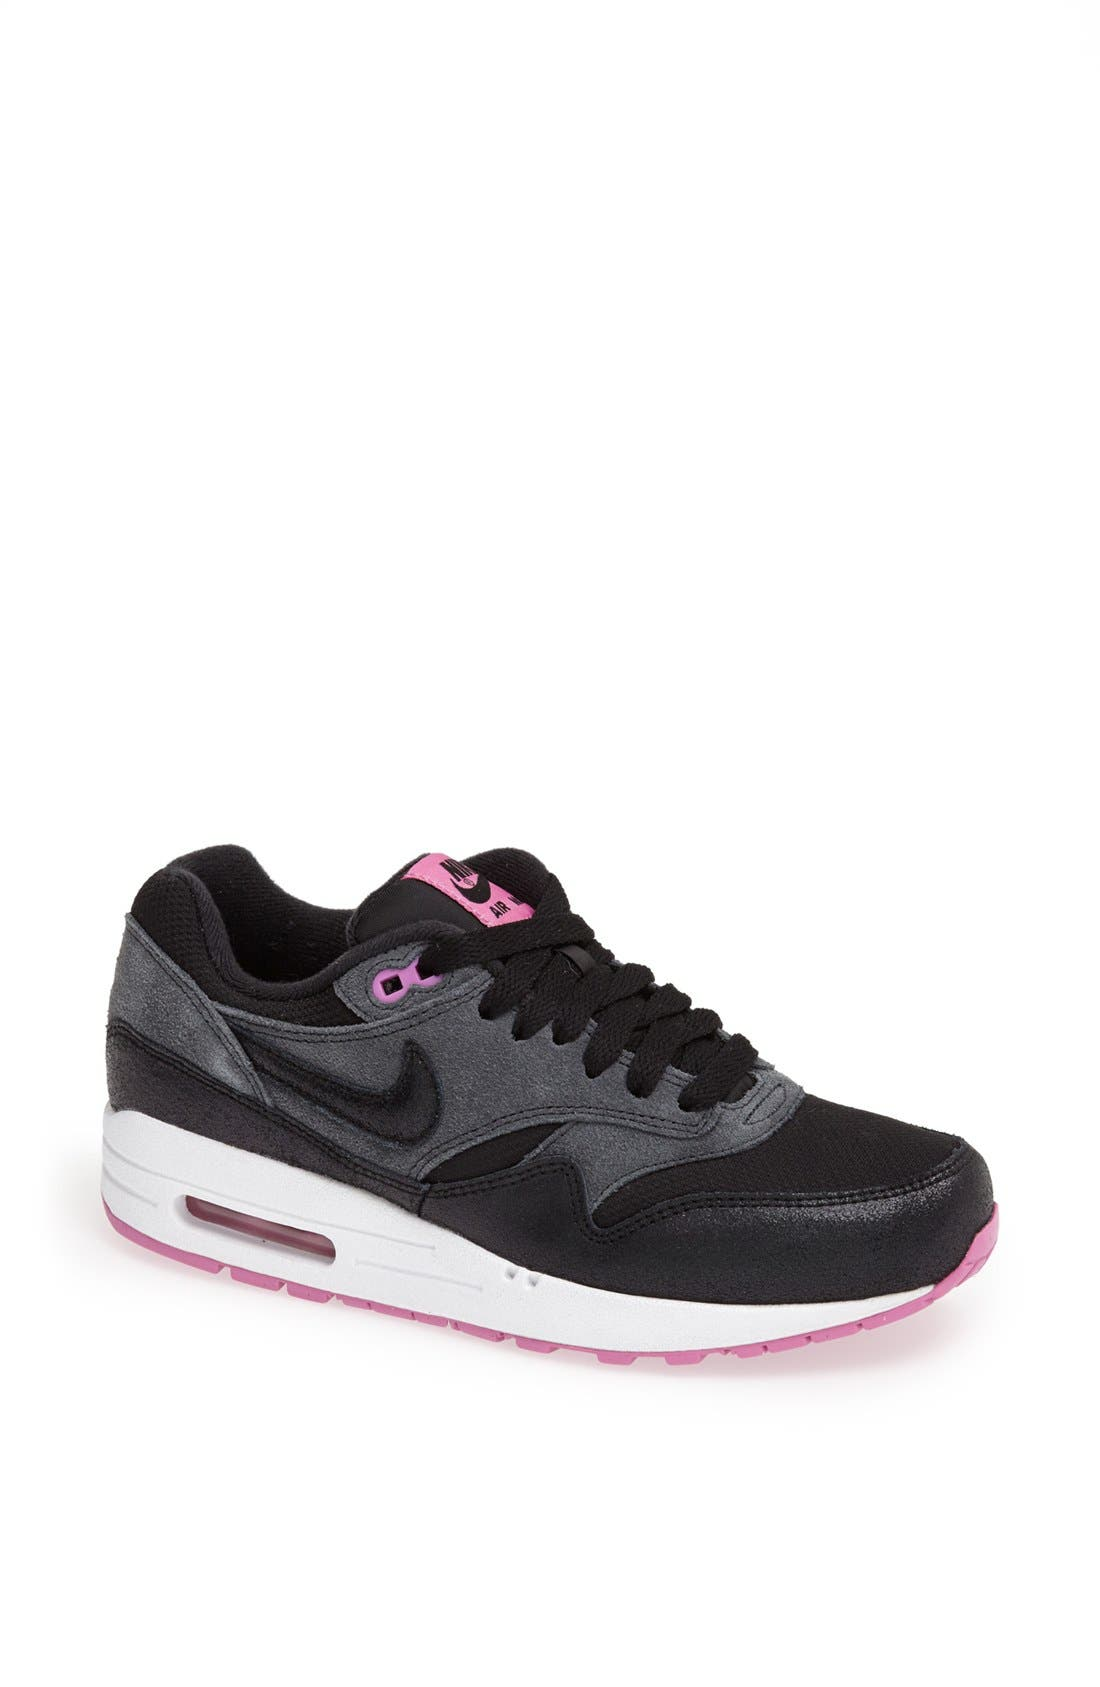 'Air Max 1 Essential' Sneaker,                             Main thumbnail 1, color,                             005